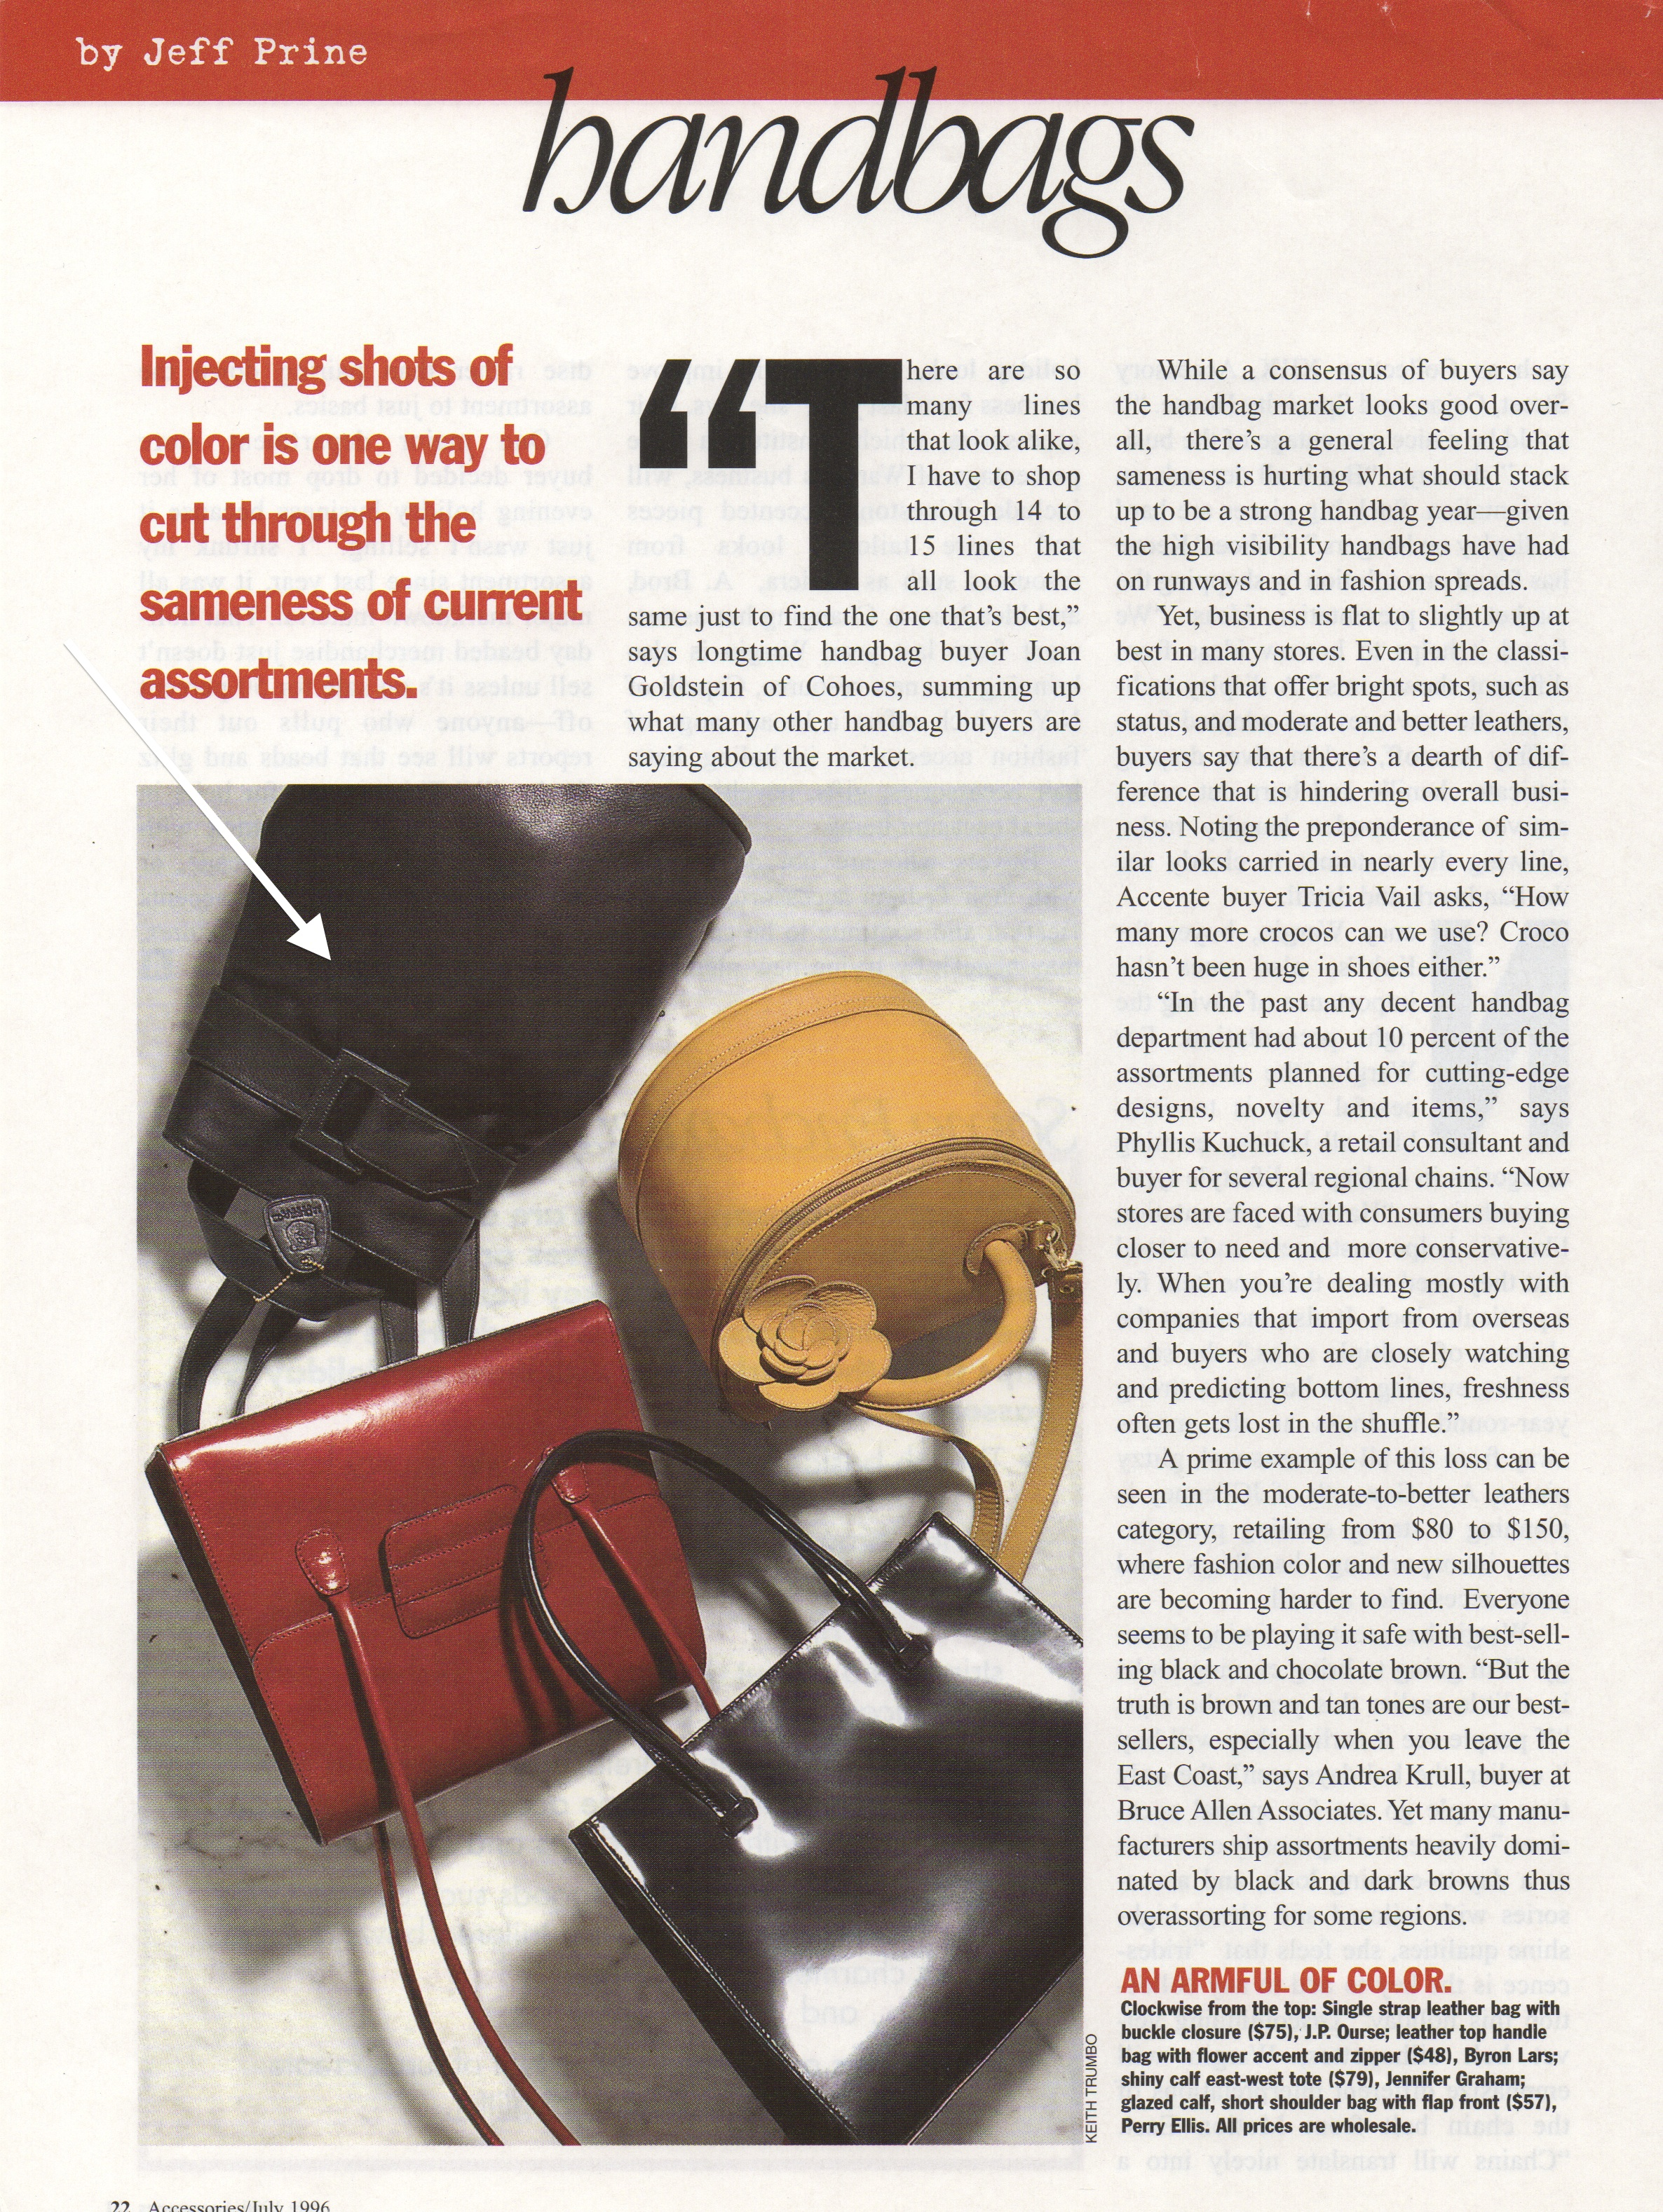 Another article featuring design